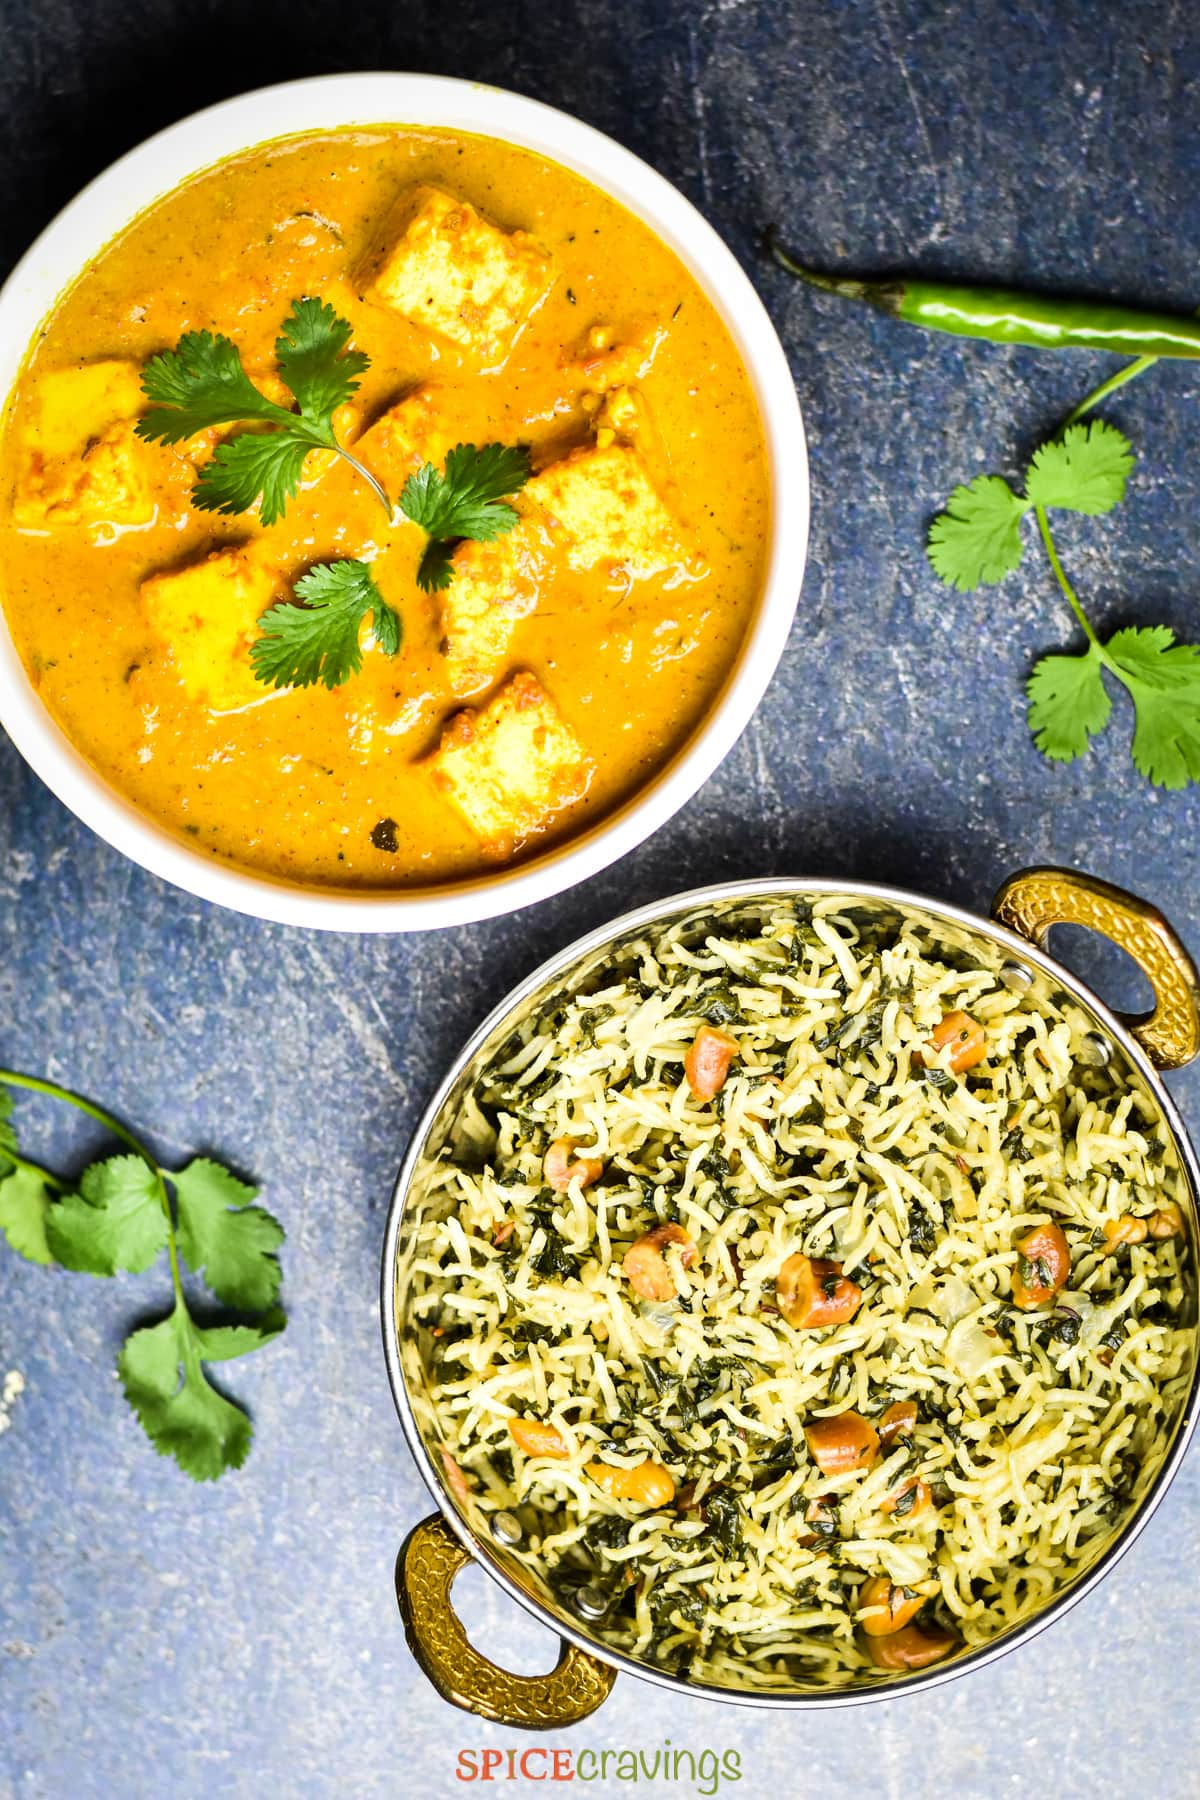 bowl of paneer makhani garnished with cilantro next to a bowl of spinach rice